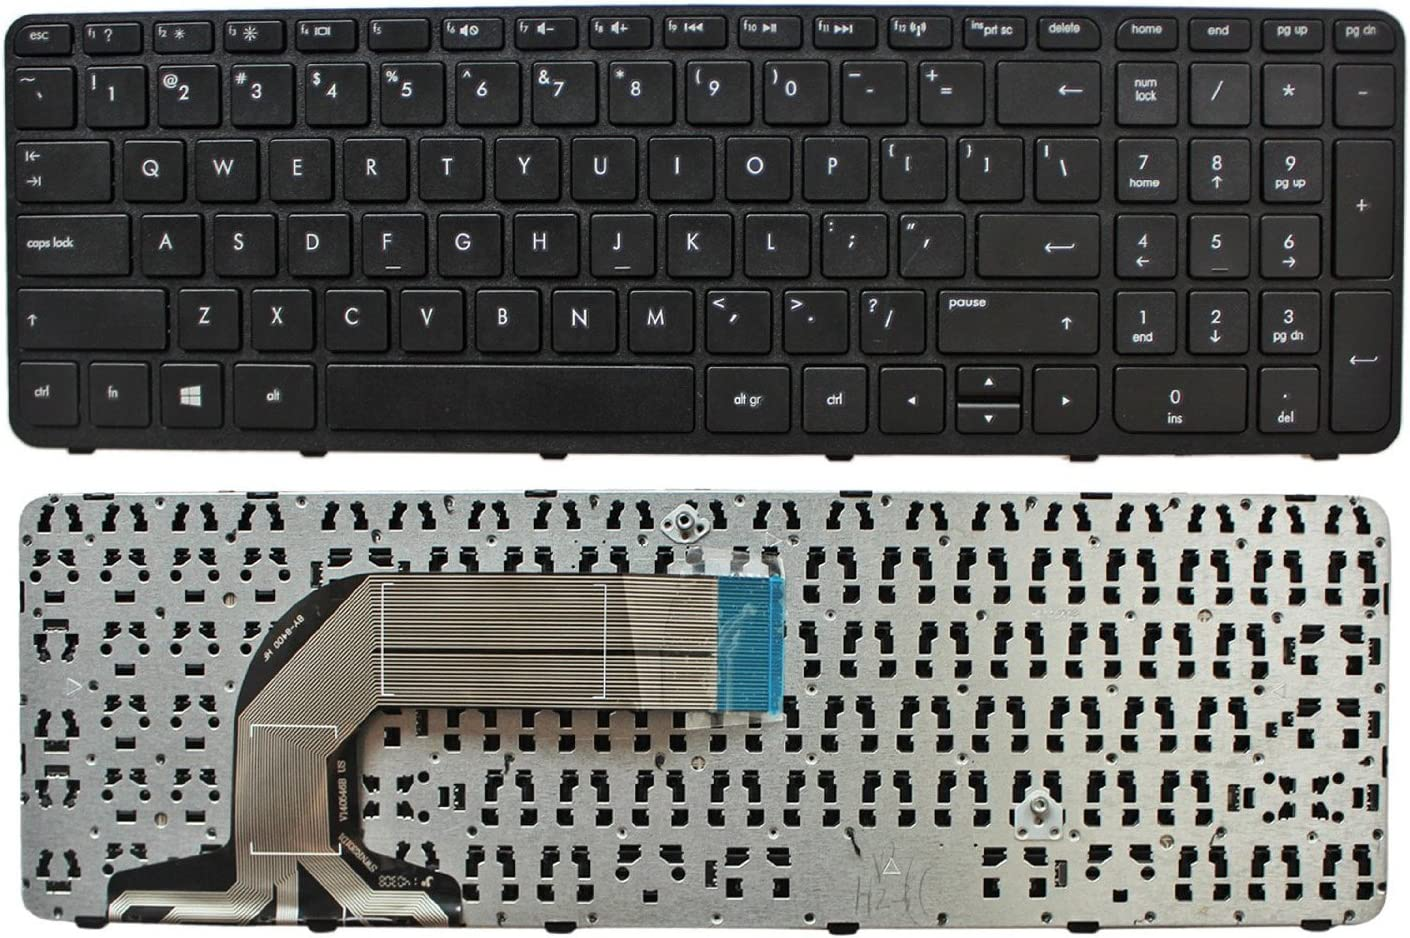 GinTai US Keyboard with Frame Black Replacement for HP Pavilion 17-e110nr 17-e111nr 17-e112dx 17-e046us